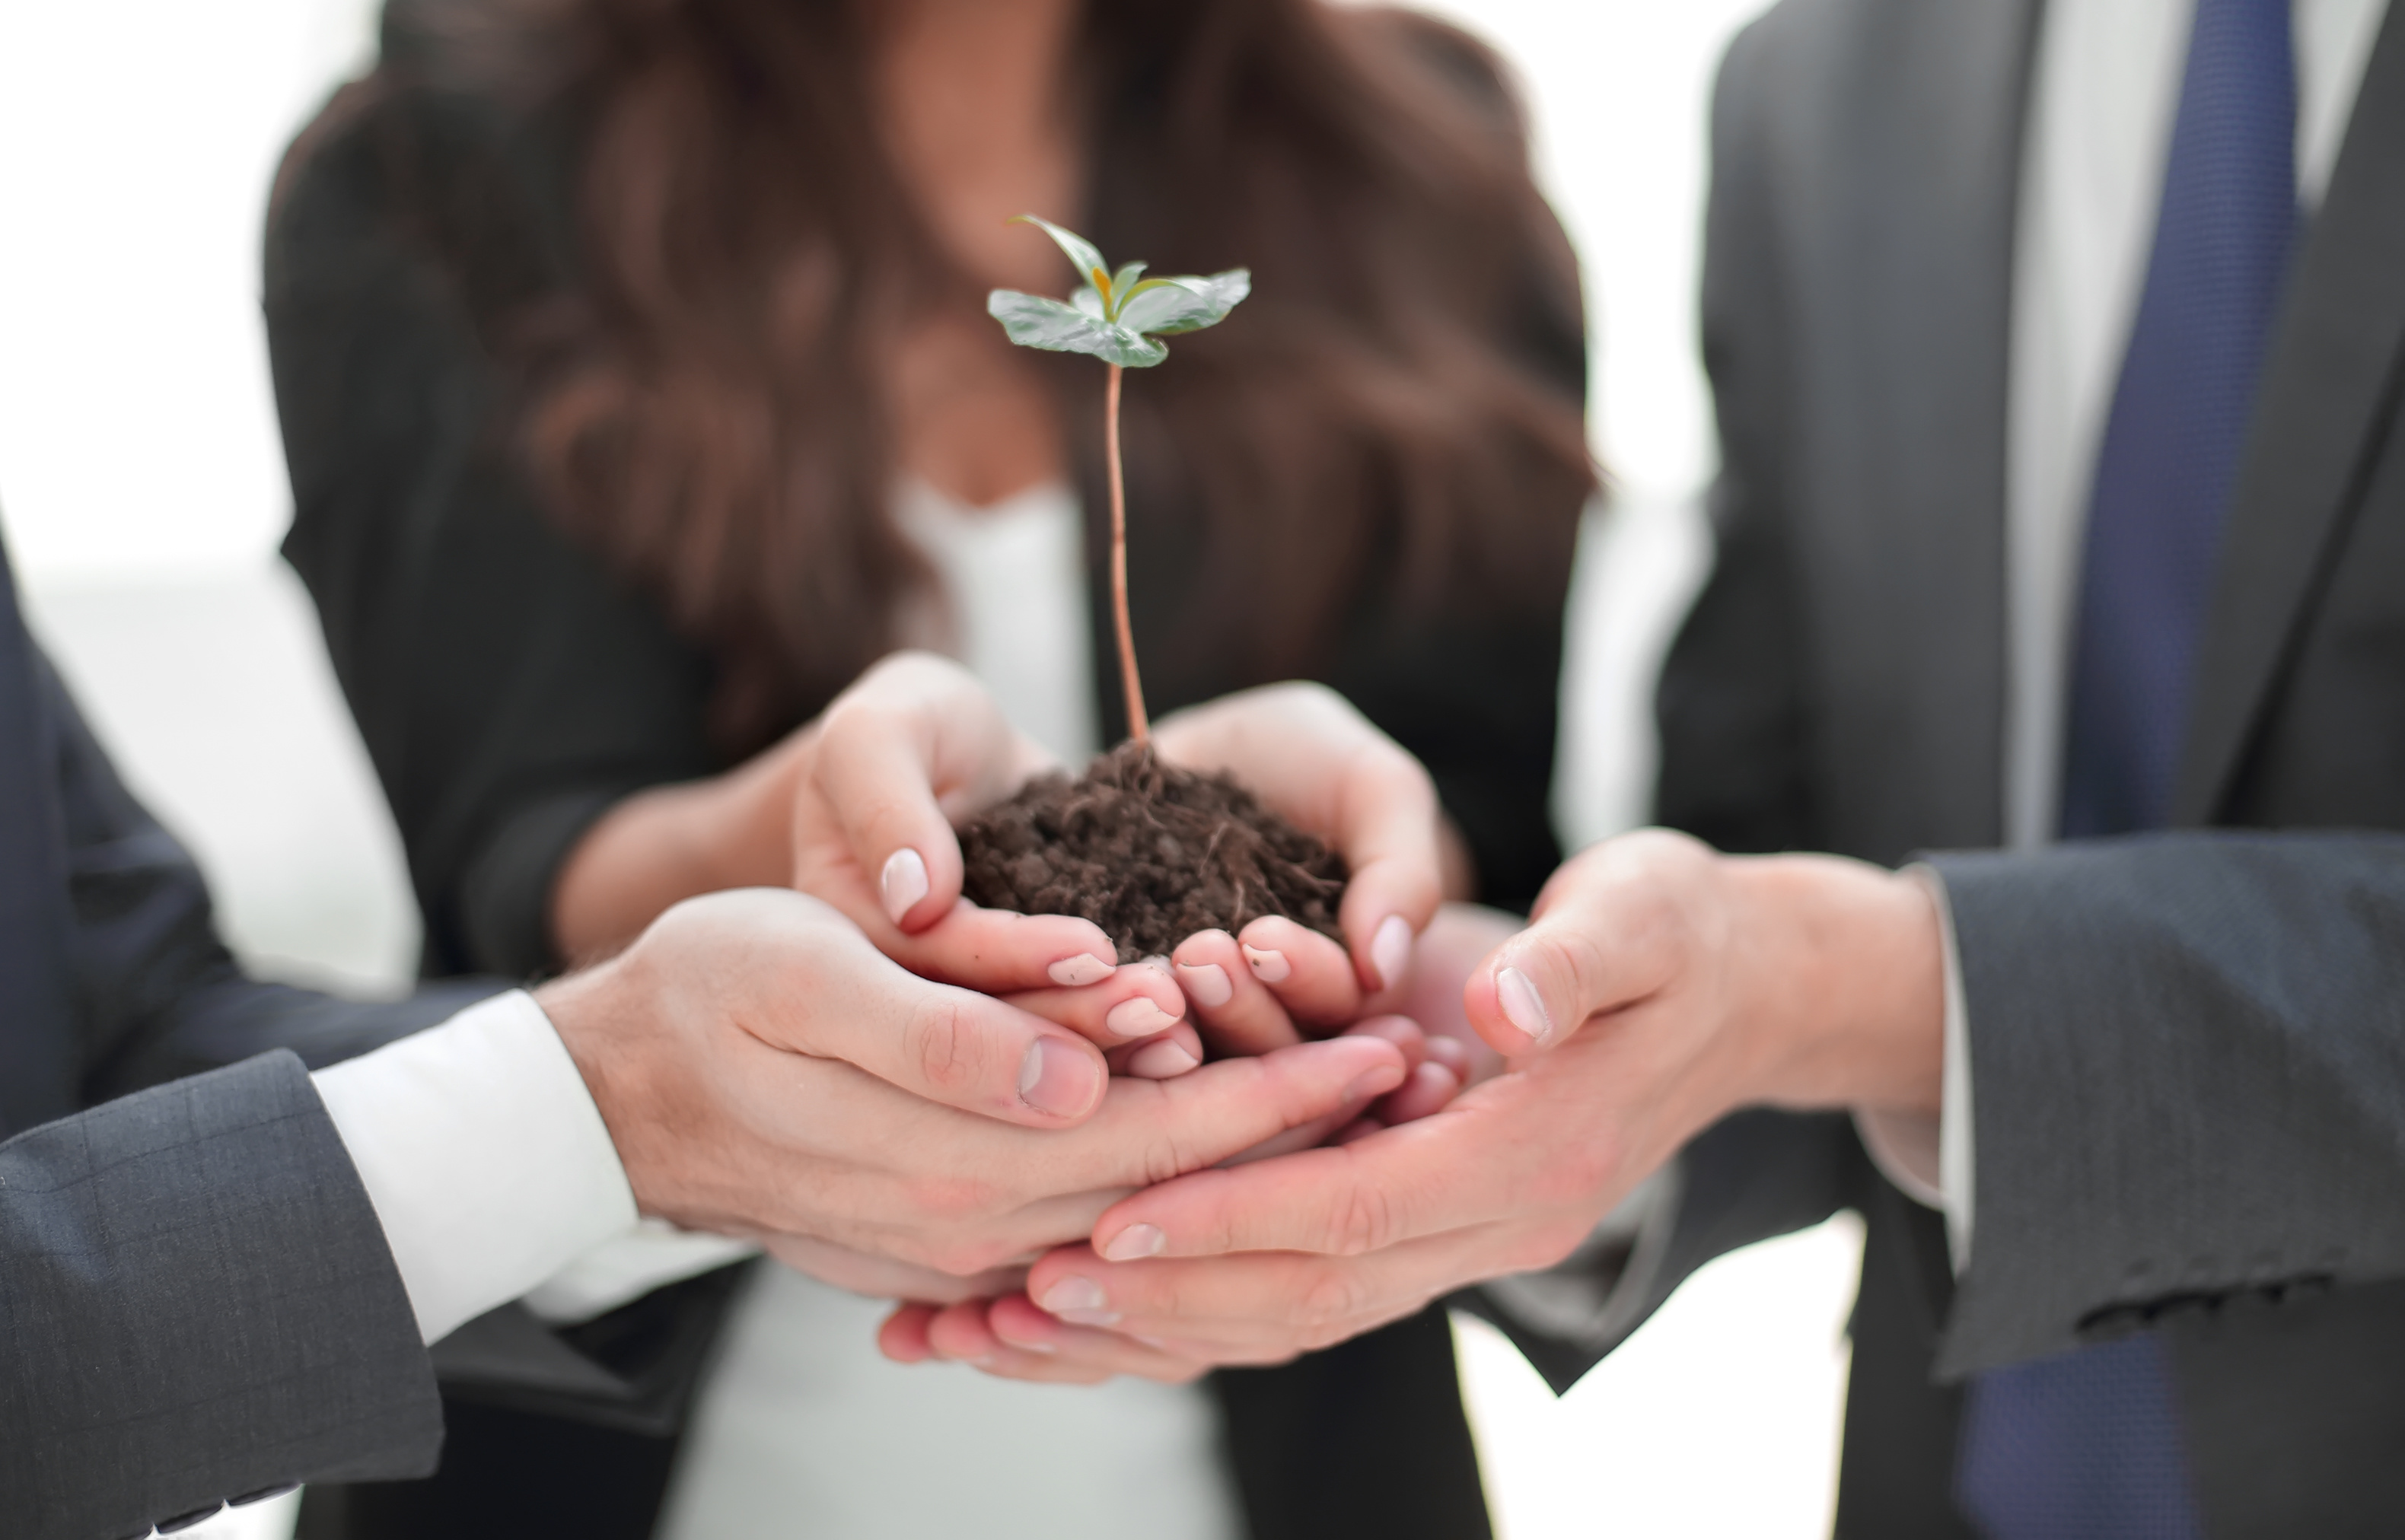 Stewardship: Taking Care of Your Employees